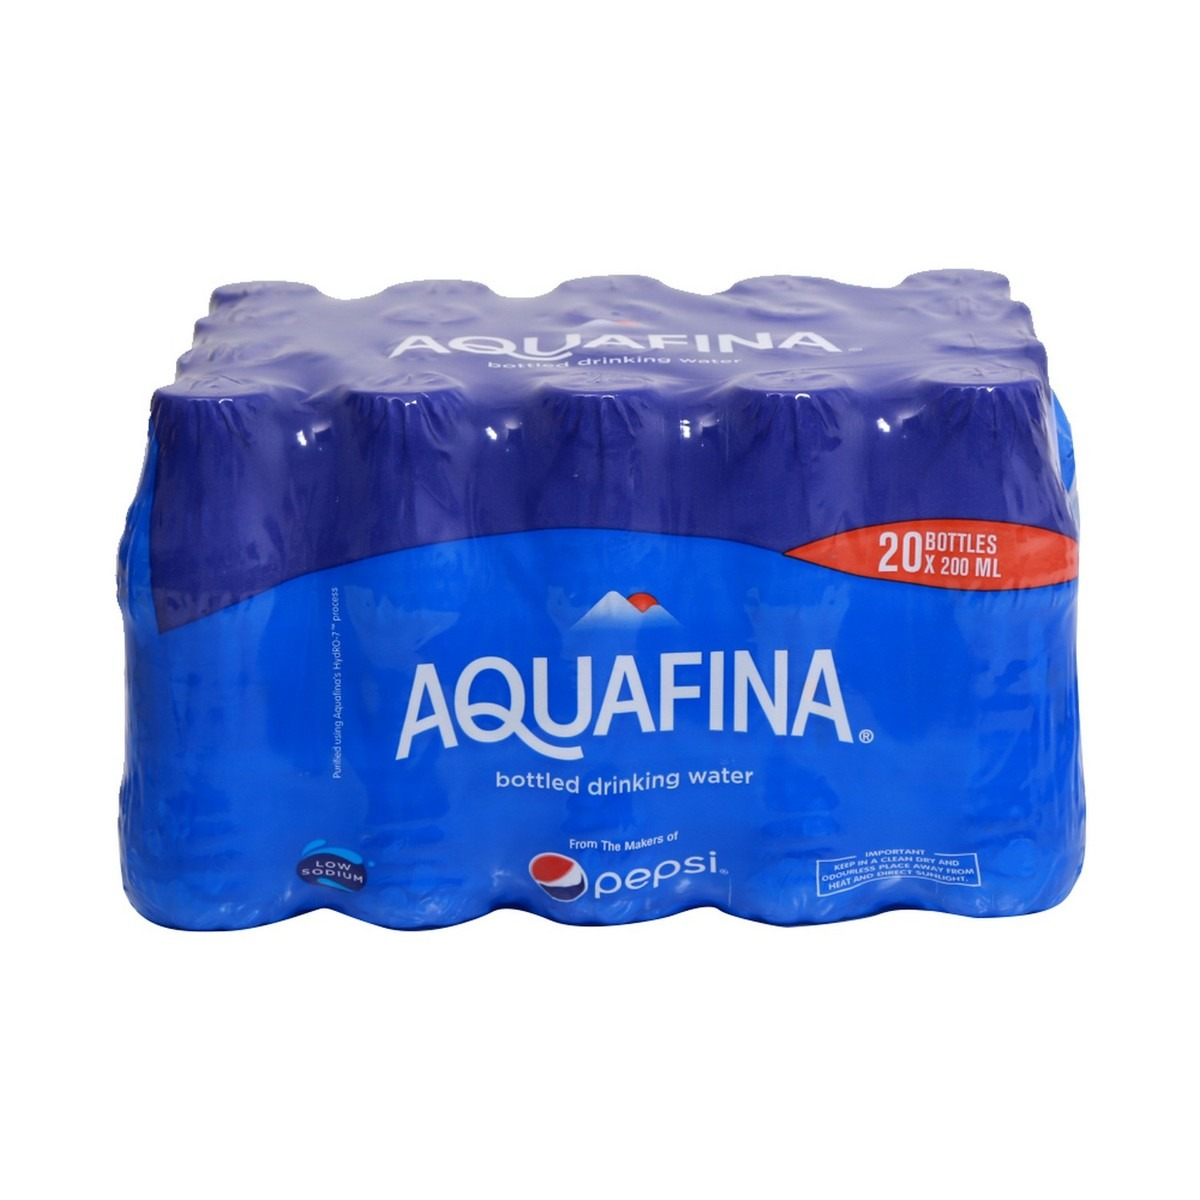 AQUAFINA WATER  20 x 200 ML